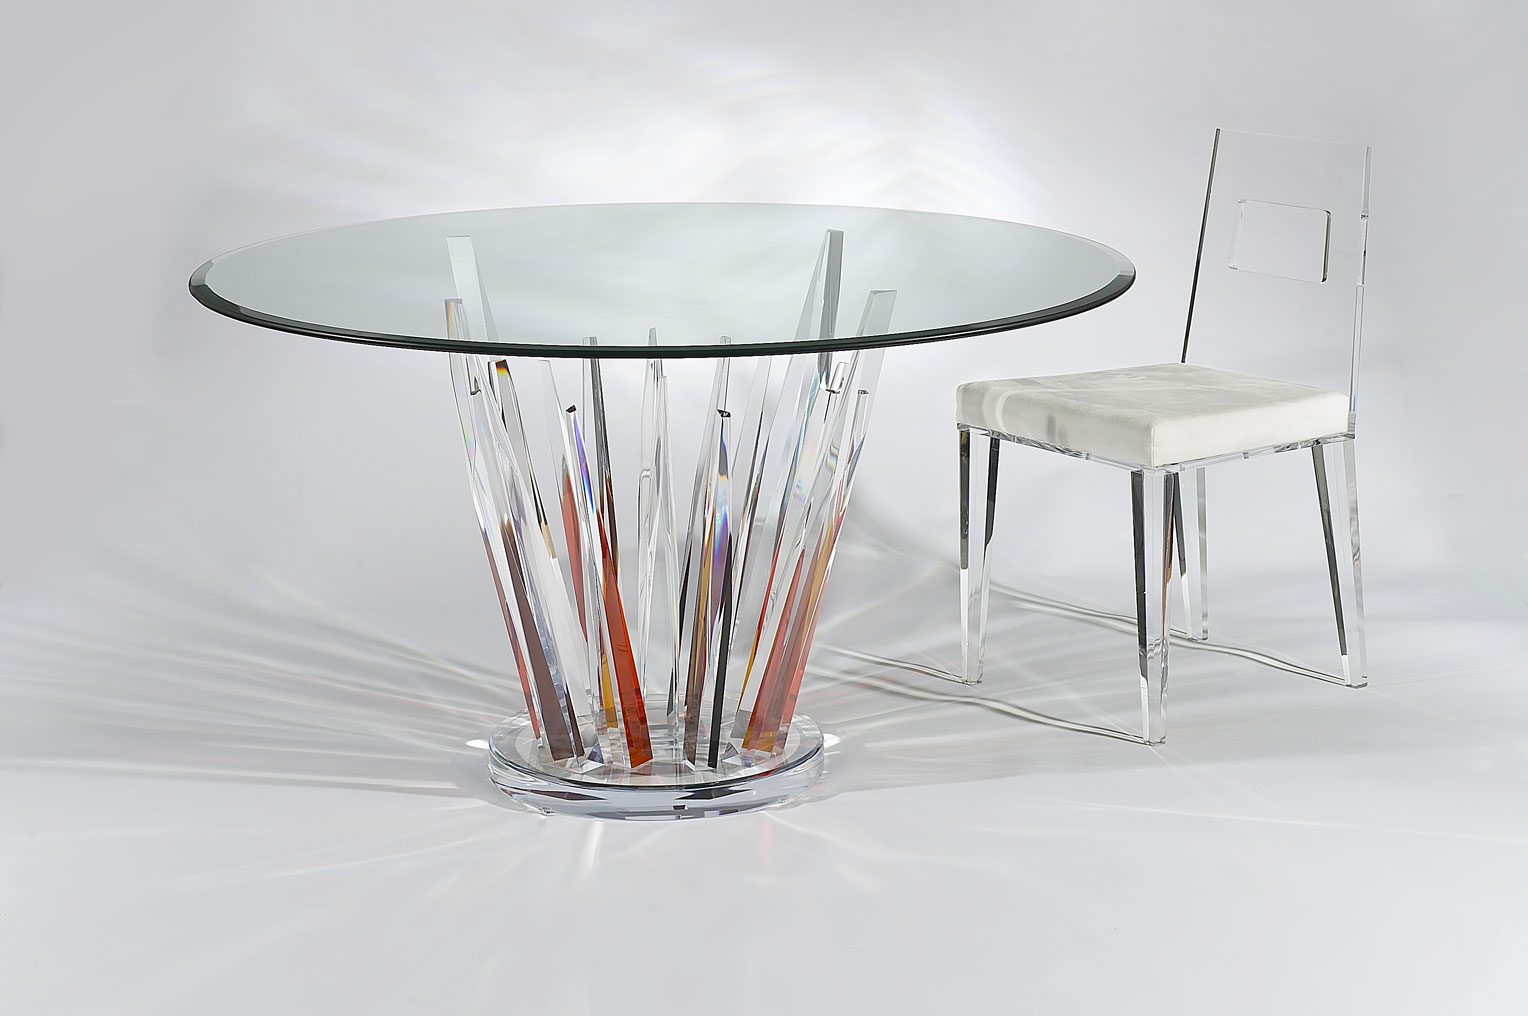 Plexiglass Chairs Crystals Colored Dinette Acrylic Dining Chair Acrylic Furniture